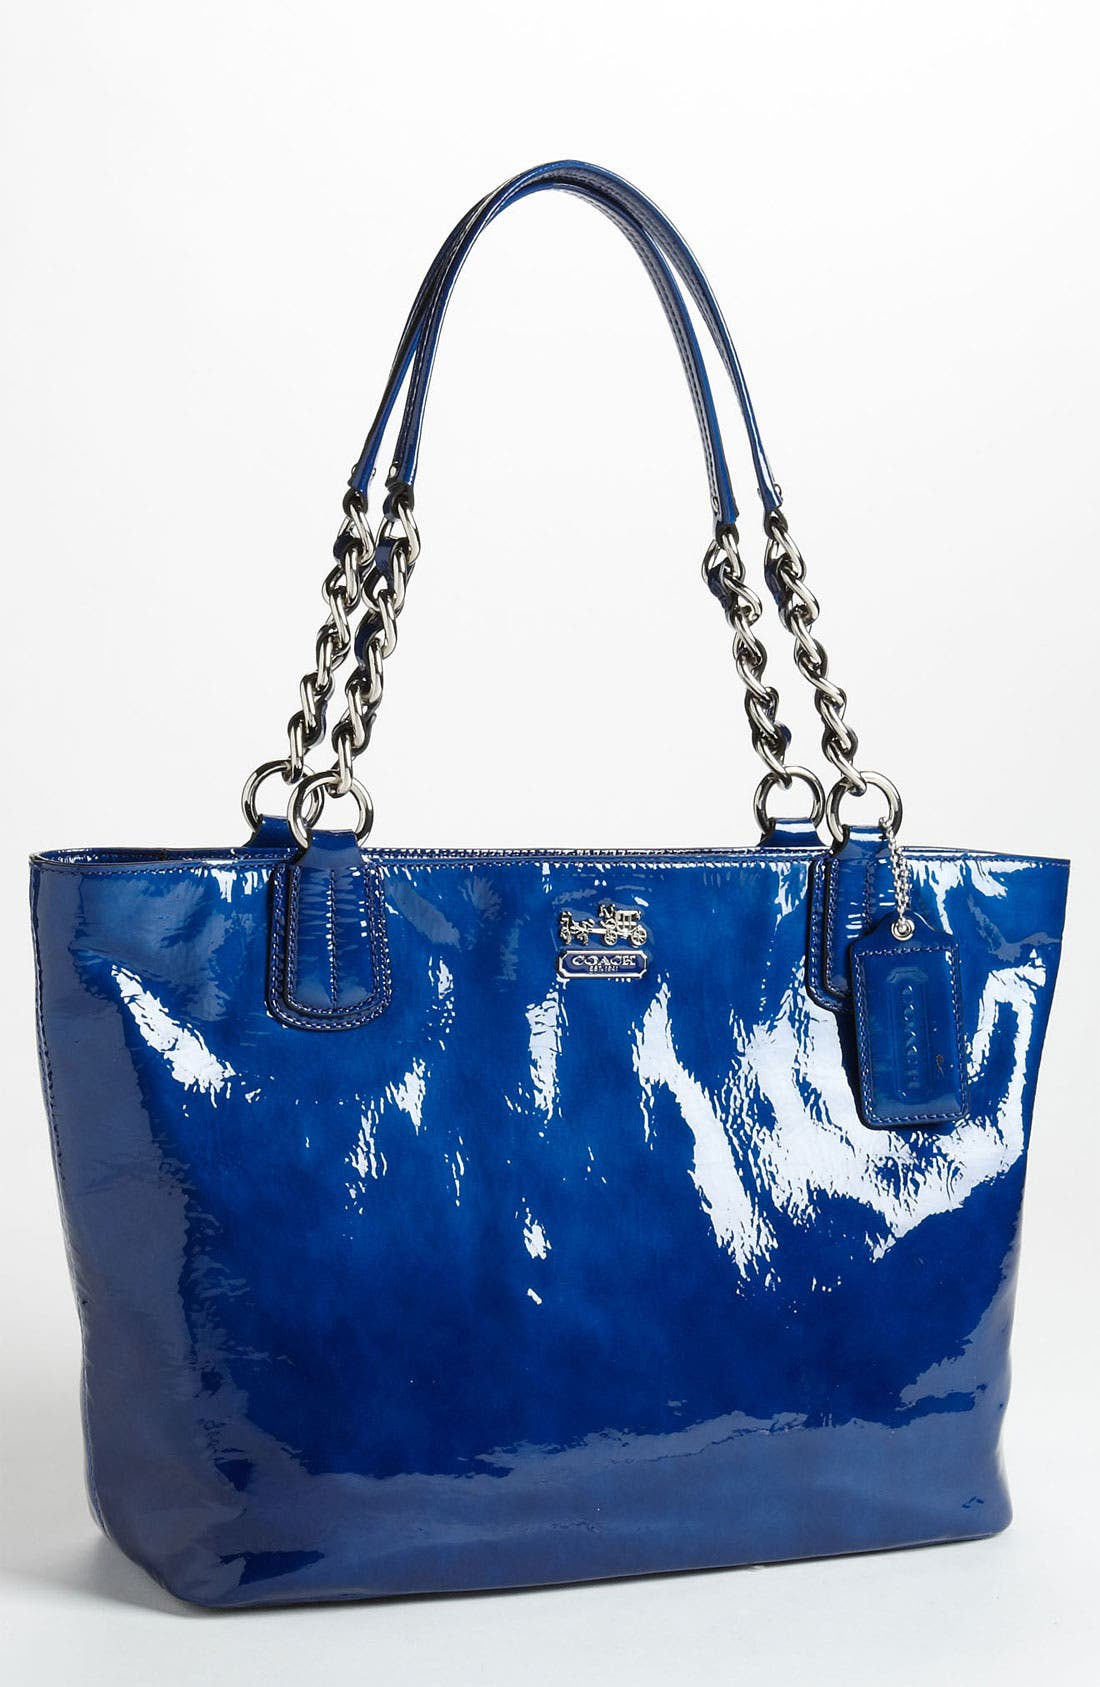 Main Image - COACH 'Madison' Patent Leather Tote